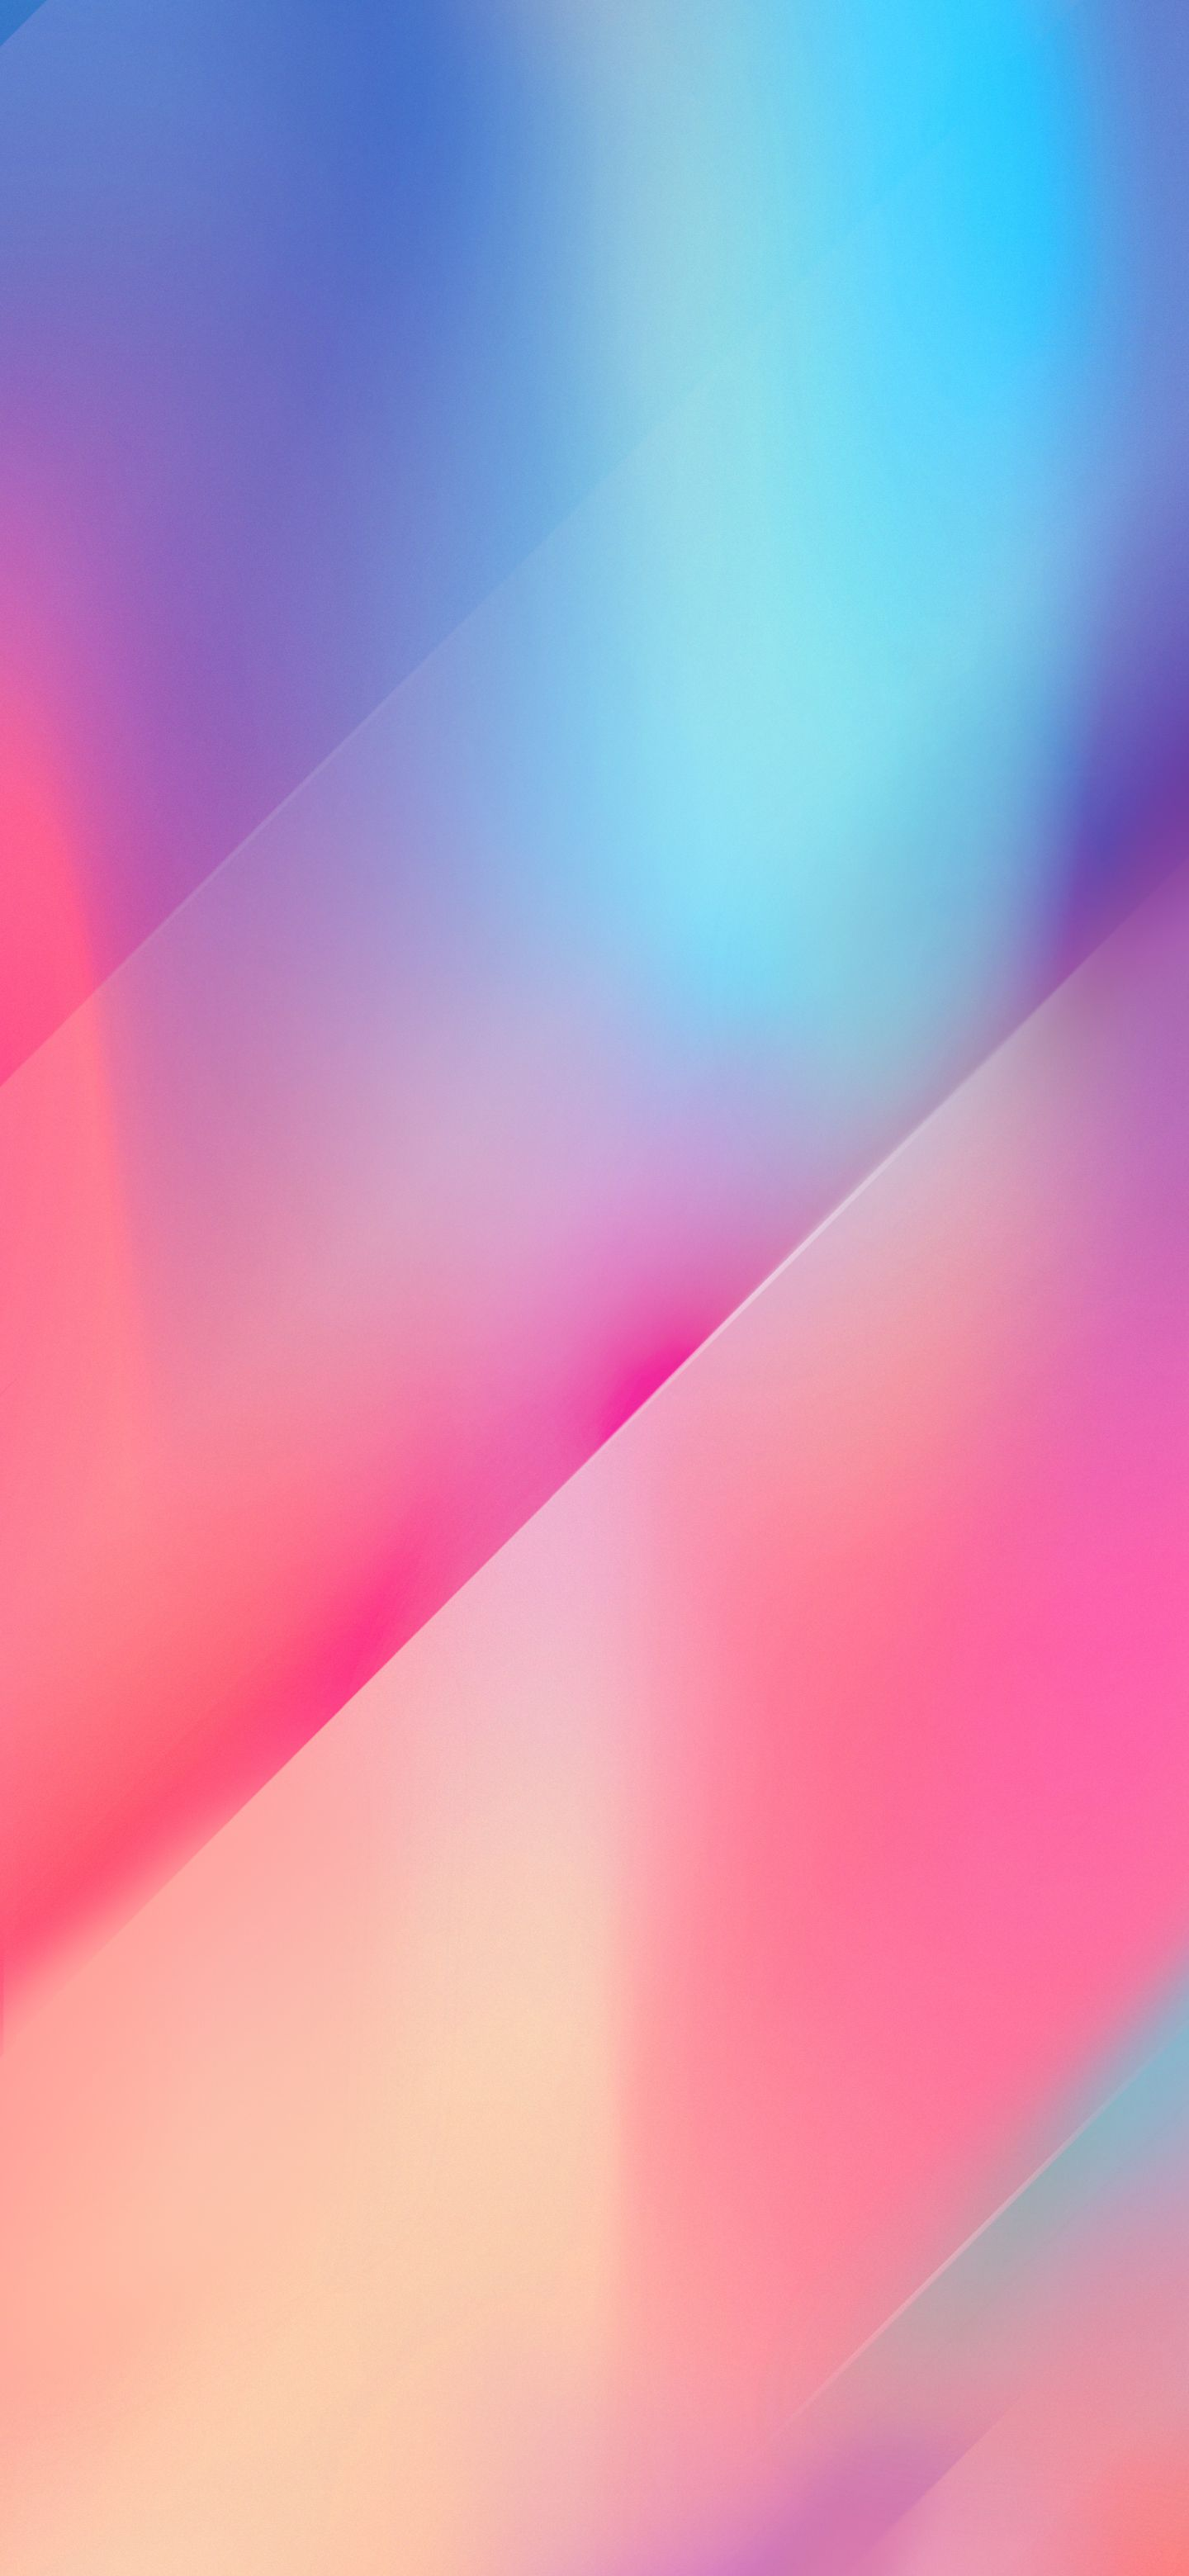 Lg G8x Thinq Wallpaper Ytechb Exclusive Stock Wallpaper Backgrounds Phone Wallpapers Apple Wallpaper